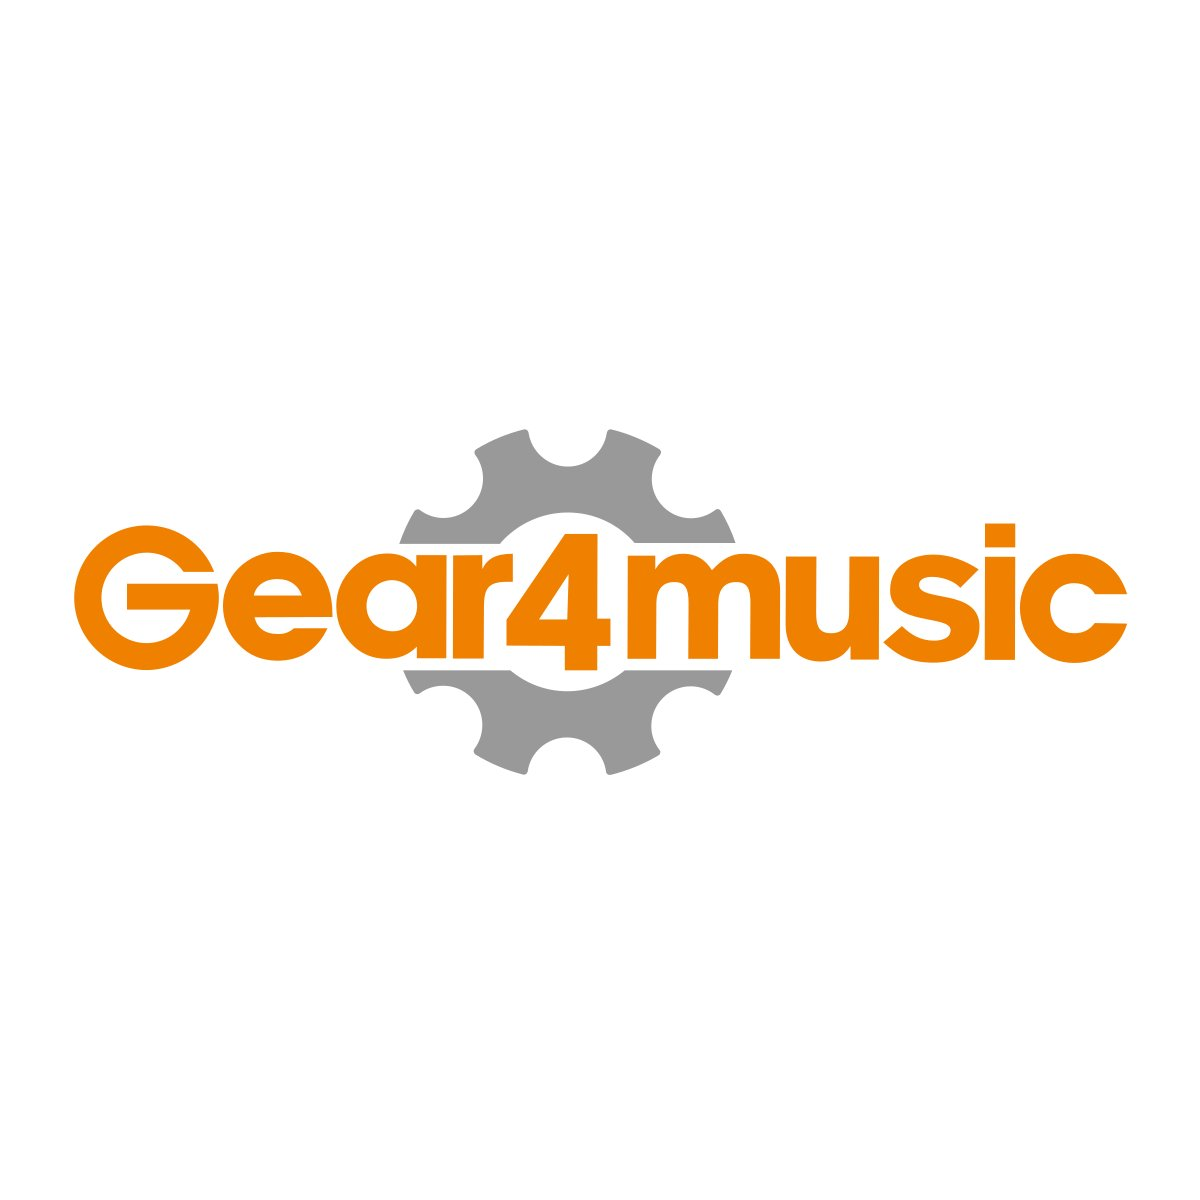 SDP-2 Piano de Palco da Gear4music + Pack Completo, Branco